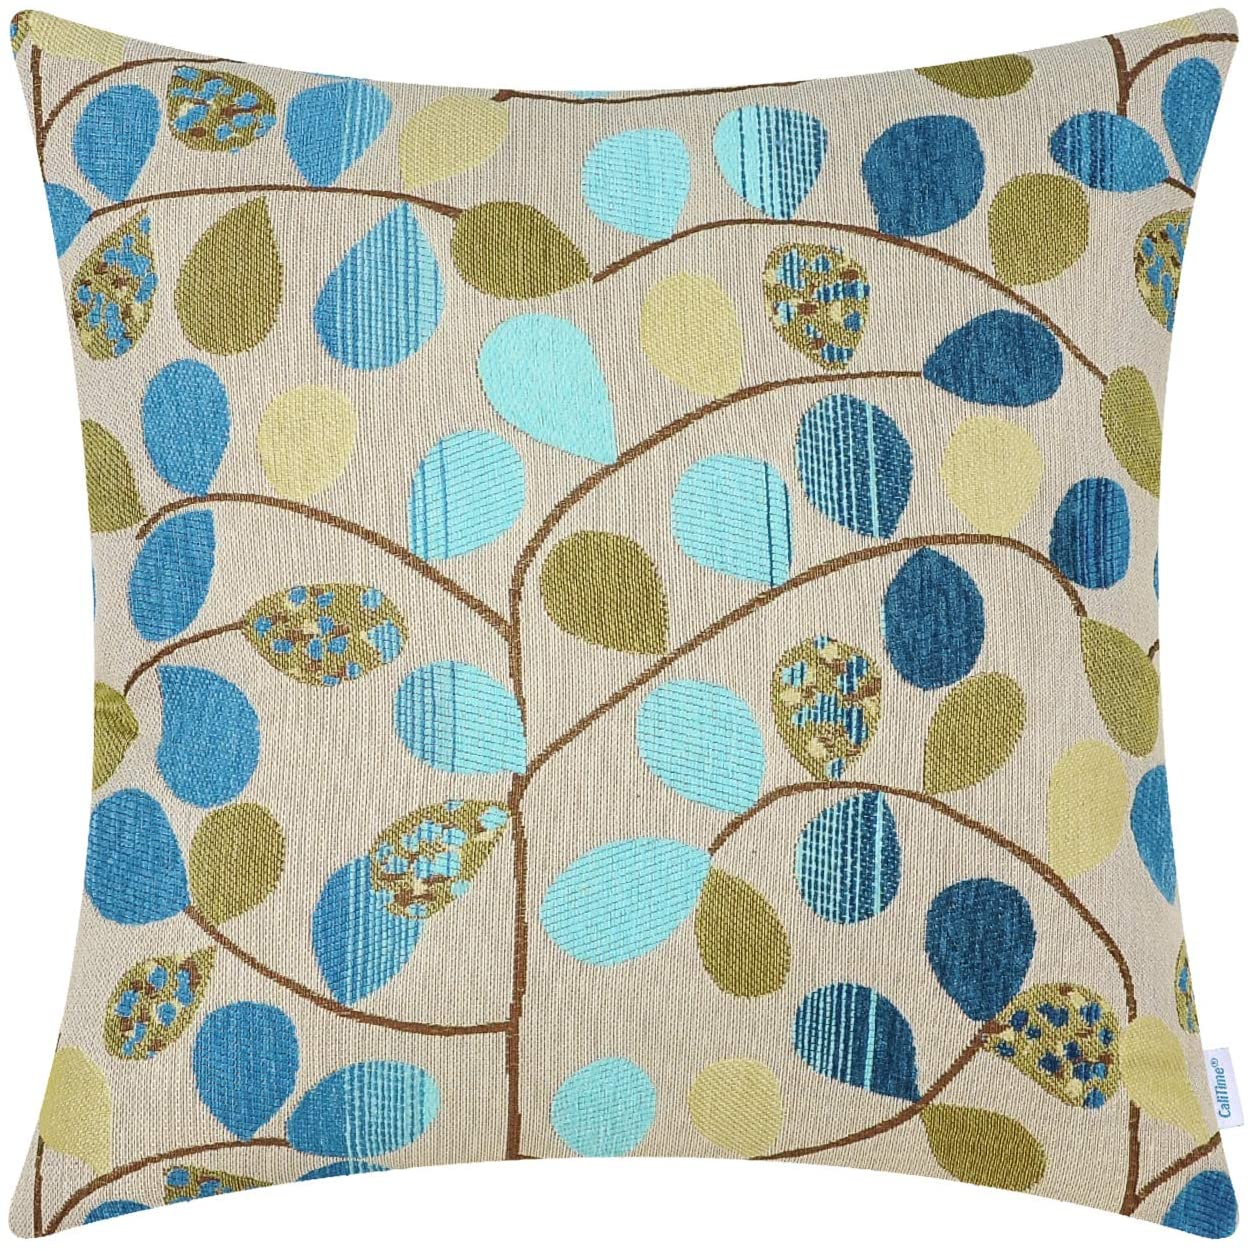 CaliTime Cushion Cover Throw Pillow Case Shell for Couch Sofa Home Decoration Luxury Chenille Cute Leaves Both Sides 20 X 20 Inches Ecru Blue